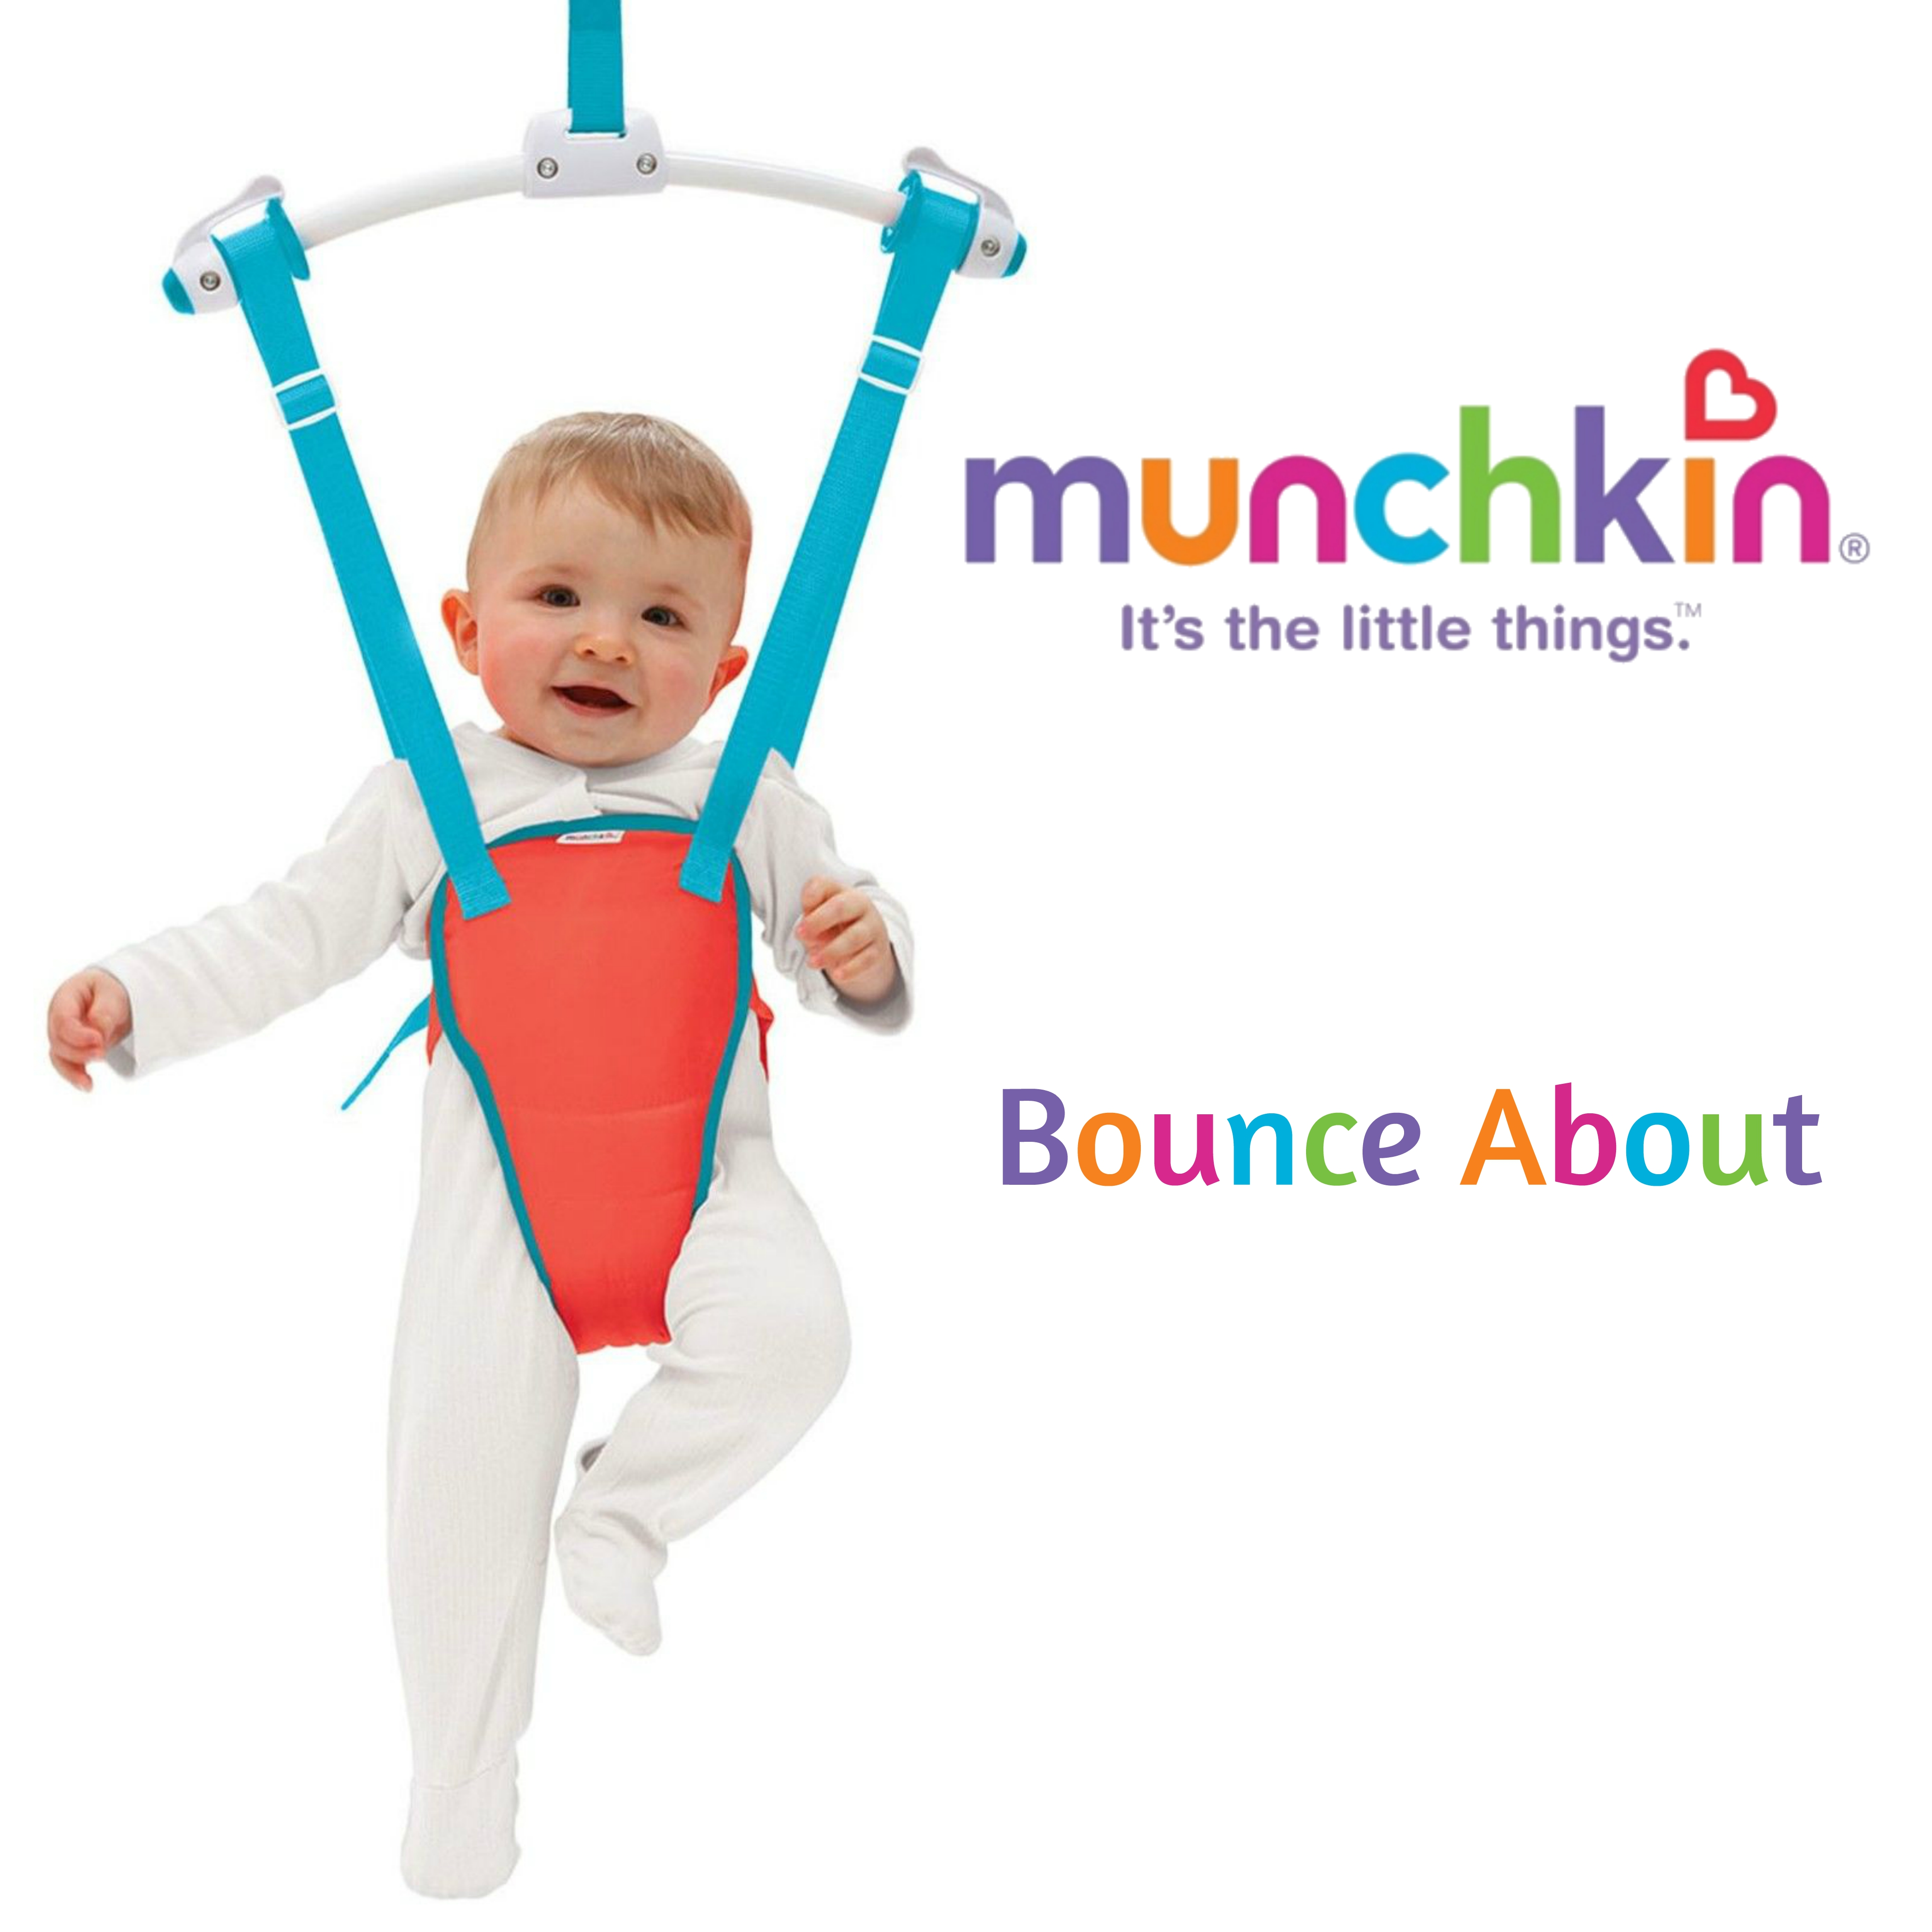 e6453a5e4 Munchkin Bounce About│Baby Door Bouncer Play Seat Jumping Fun ...